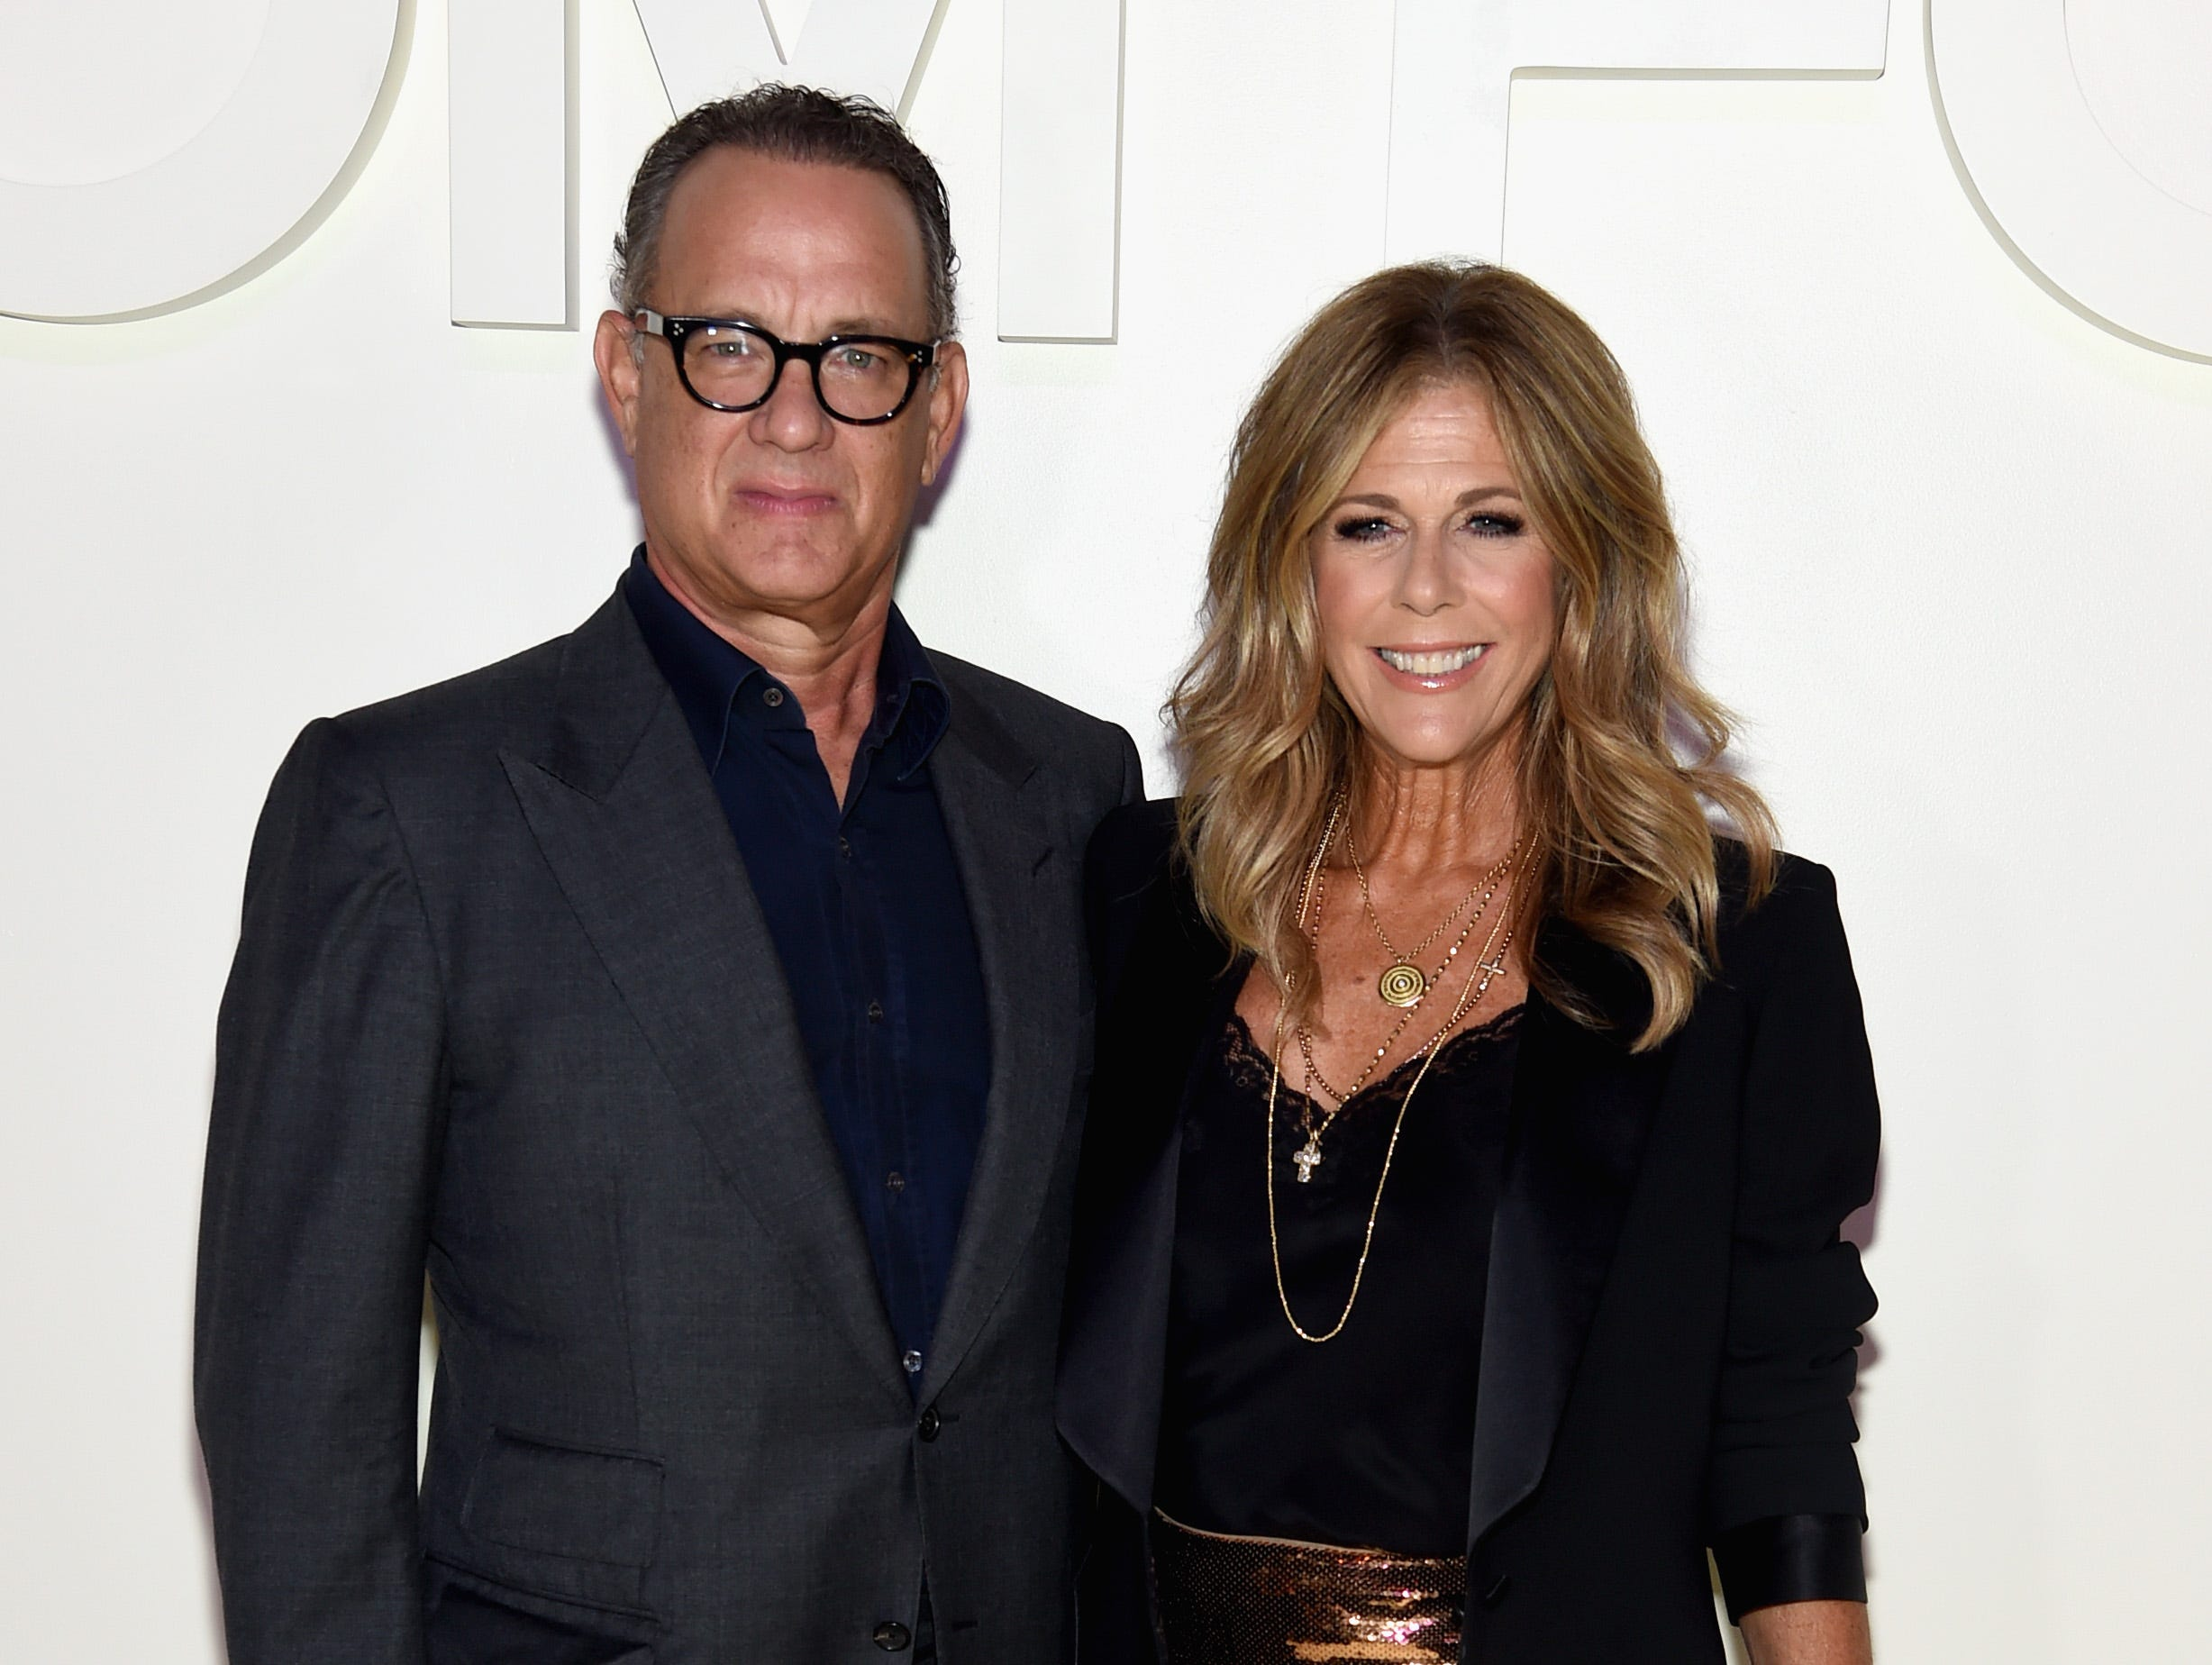 NEW YORK, NY - SEPTEMBER 05:  Tom Hanks and Rita Wilson attend the Tom Ford fashion show during New York Fashion Week at Park Avenue Armory on September 5, 2018 in New York City.  (Photo by Jamie McCarthy/Getty Images) ORG XMIT: 775216222 ORIG FILE ID: 1027412776